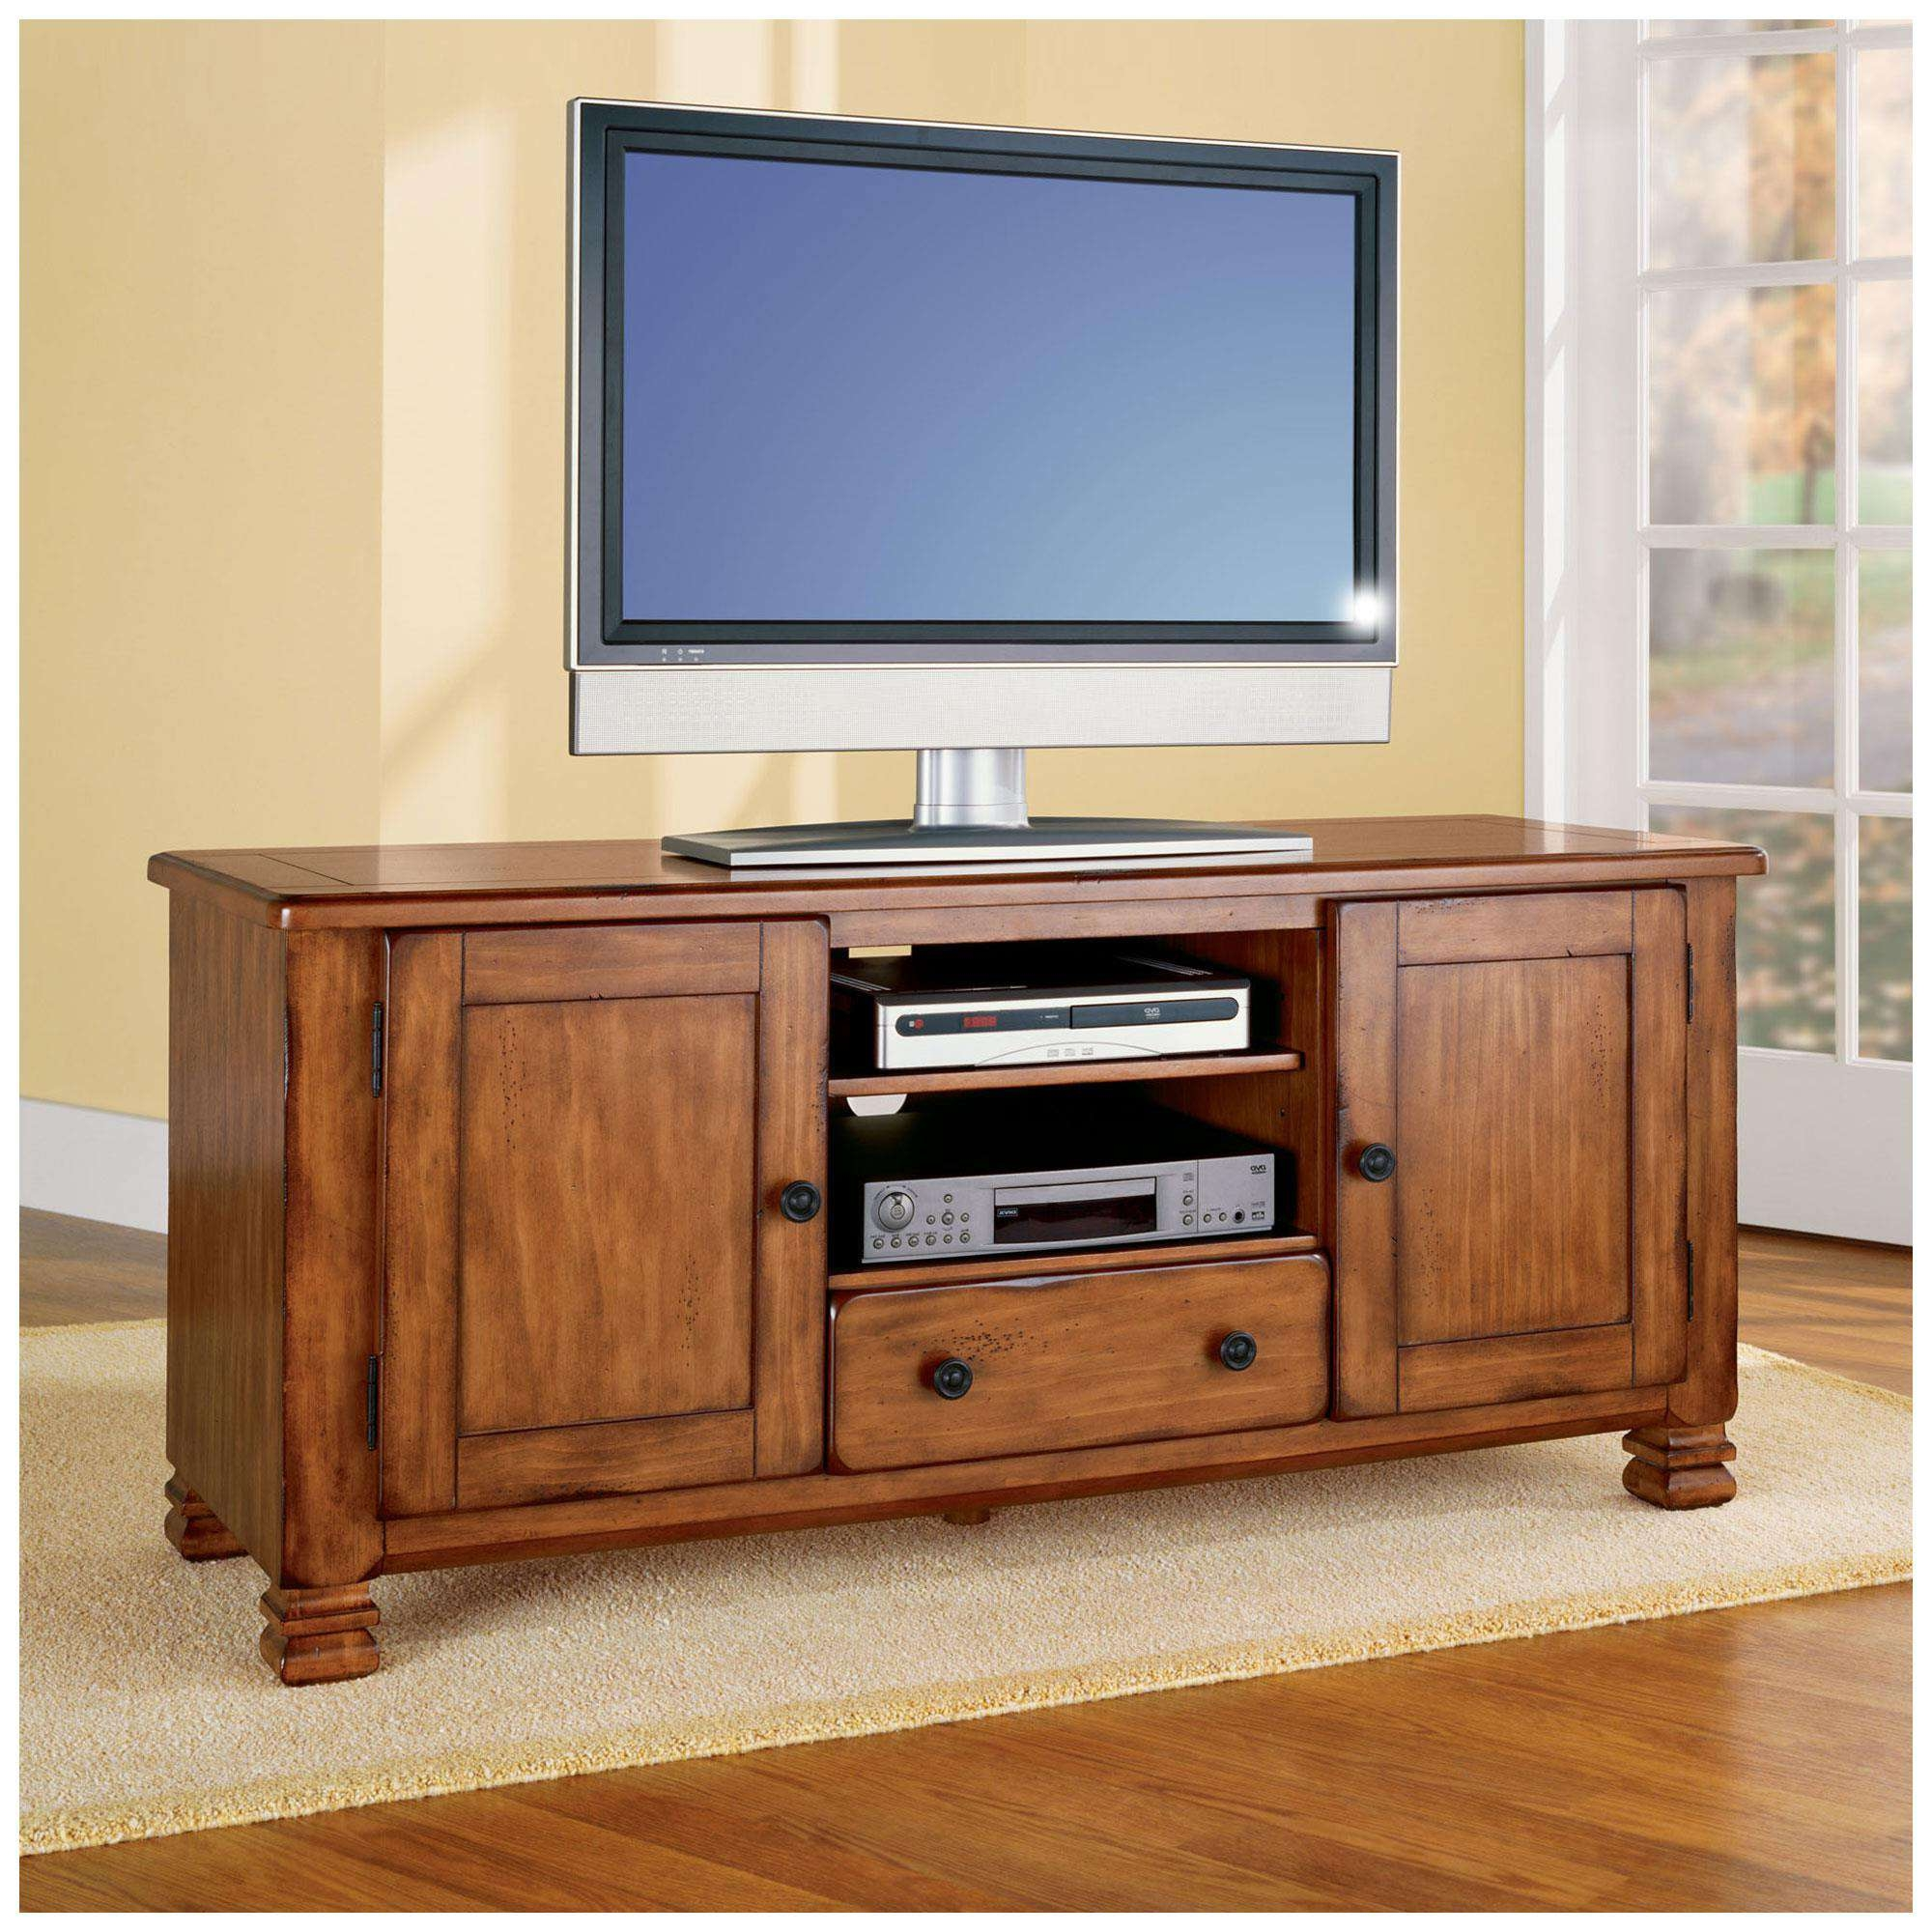 Open Tv Stands Uncategorized Used File Cabinets For Sale Best Pertaining To Wooden Tv Stands For 50 Inch Tv (View 3 of 15)